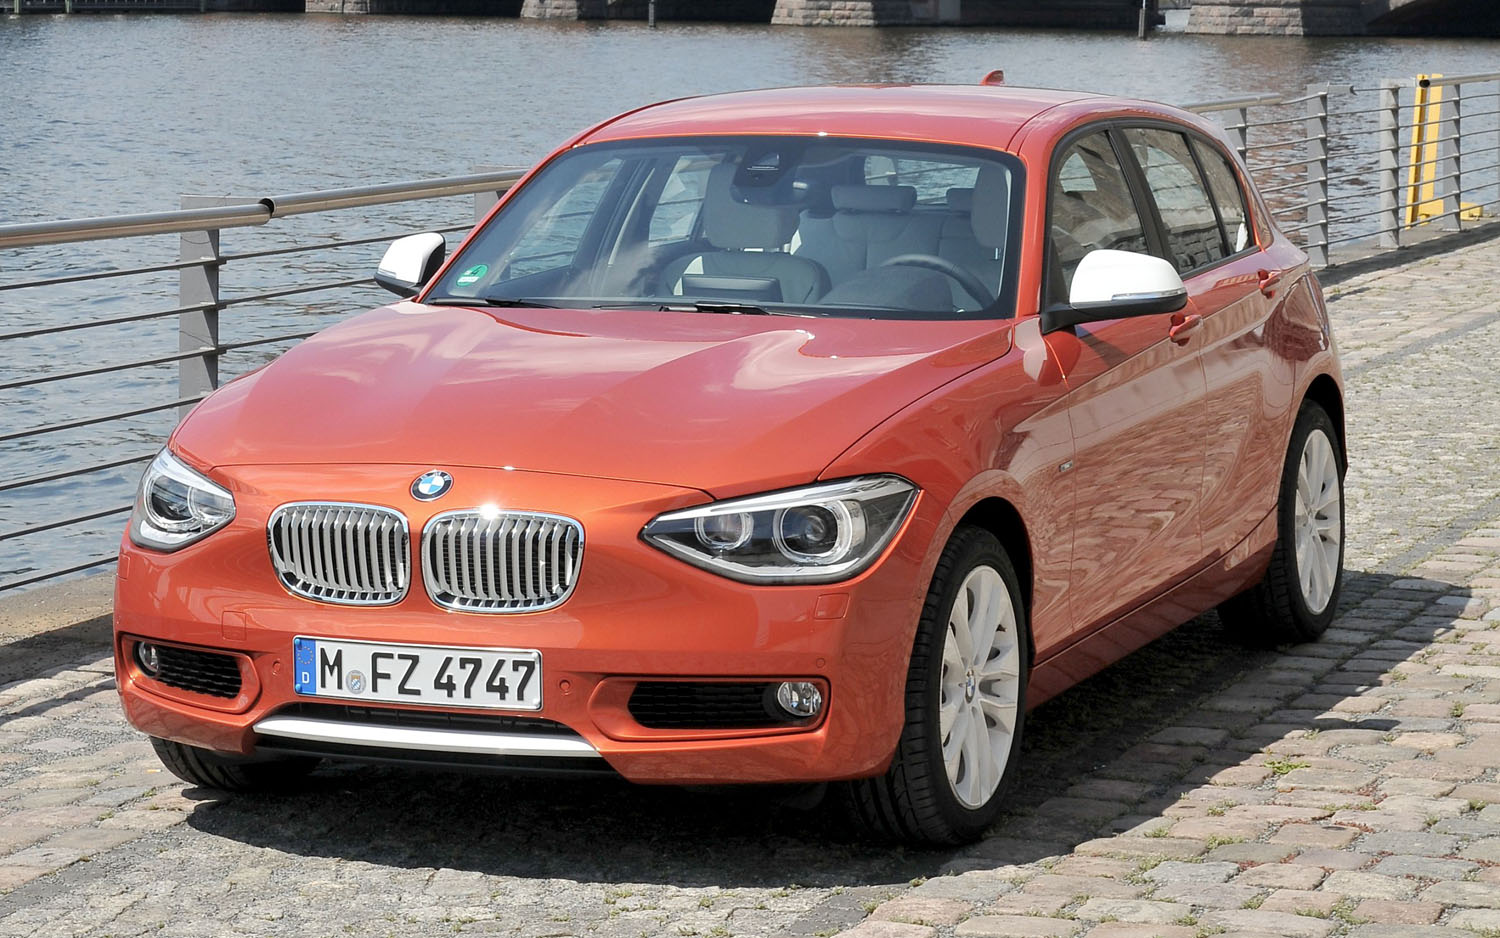 2012 BMW 1 Series Hatchback Front Three Quarter 211